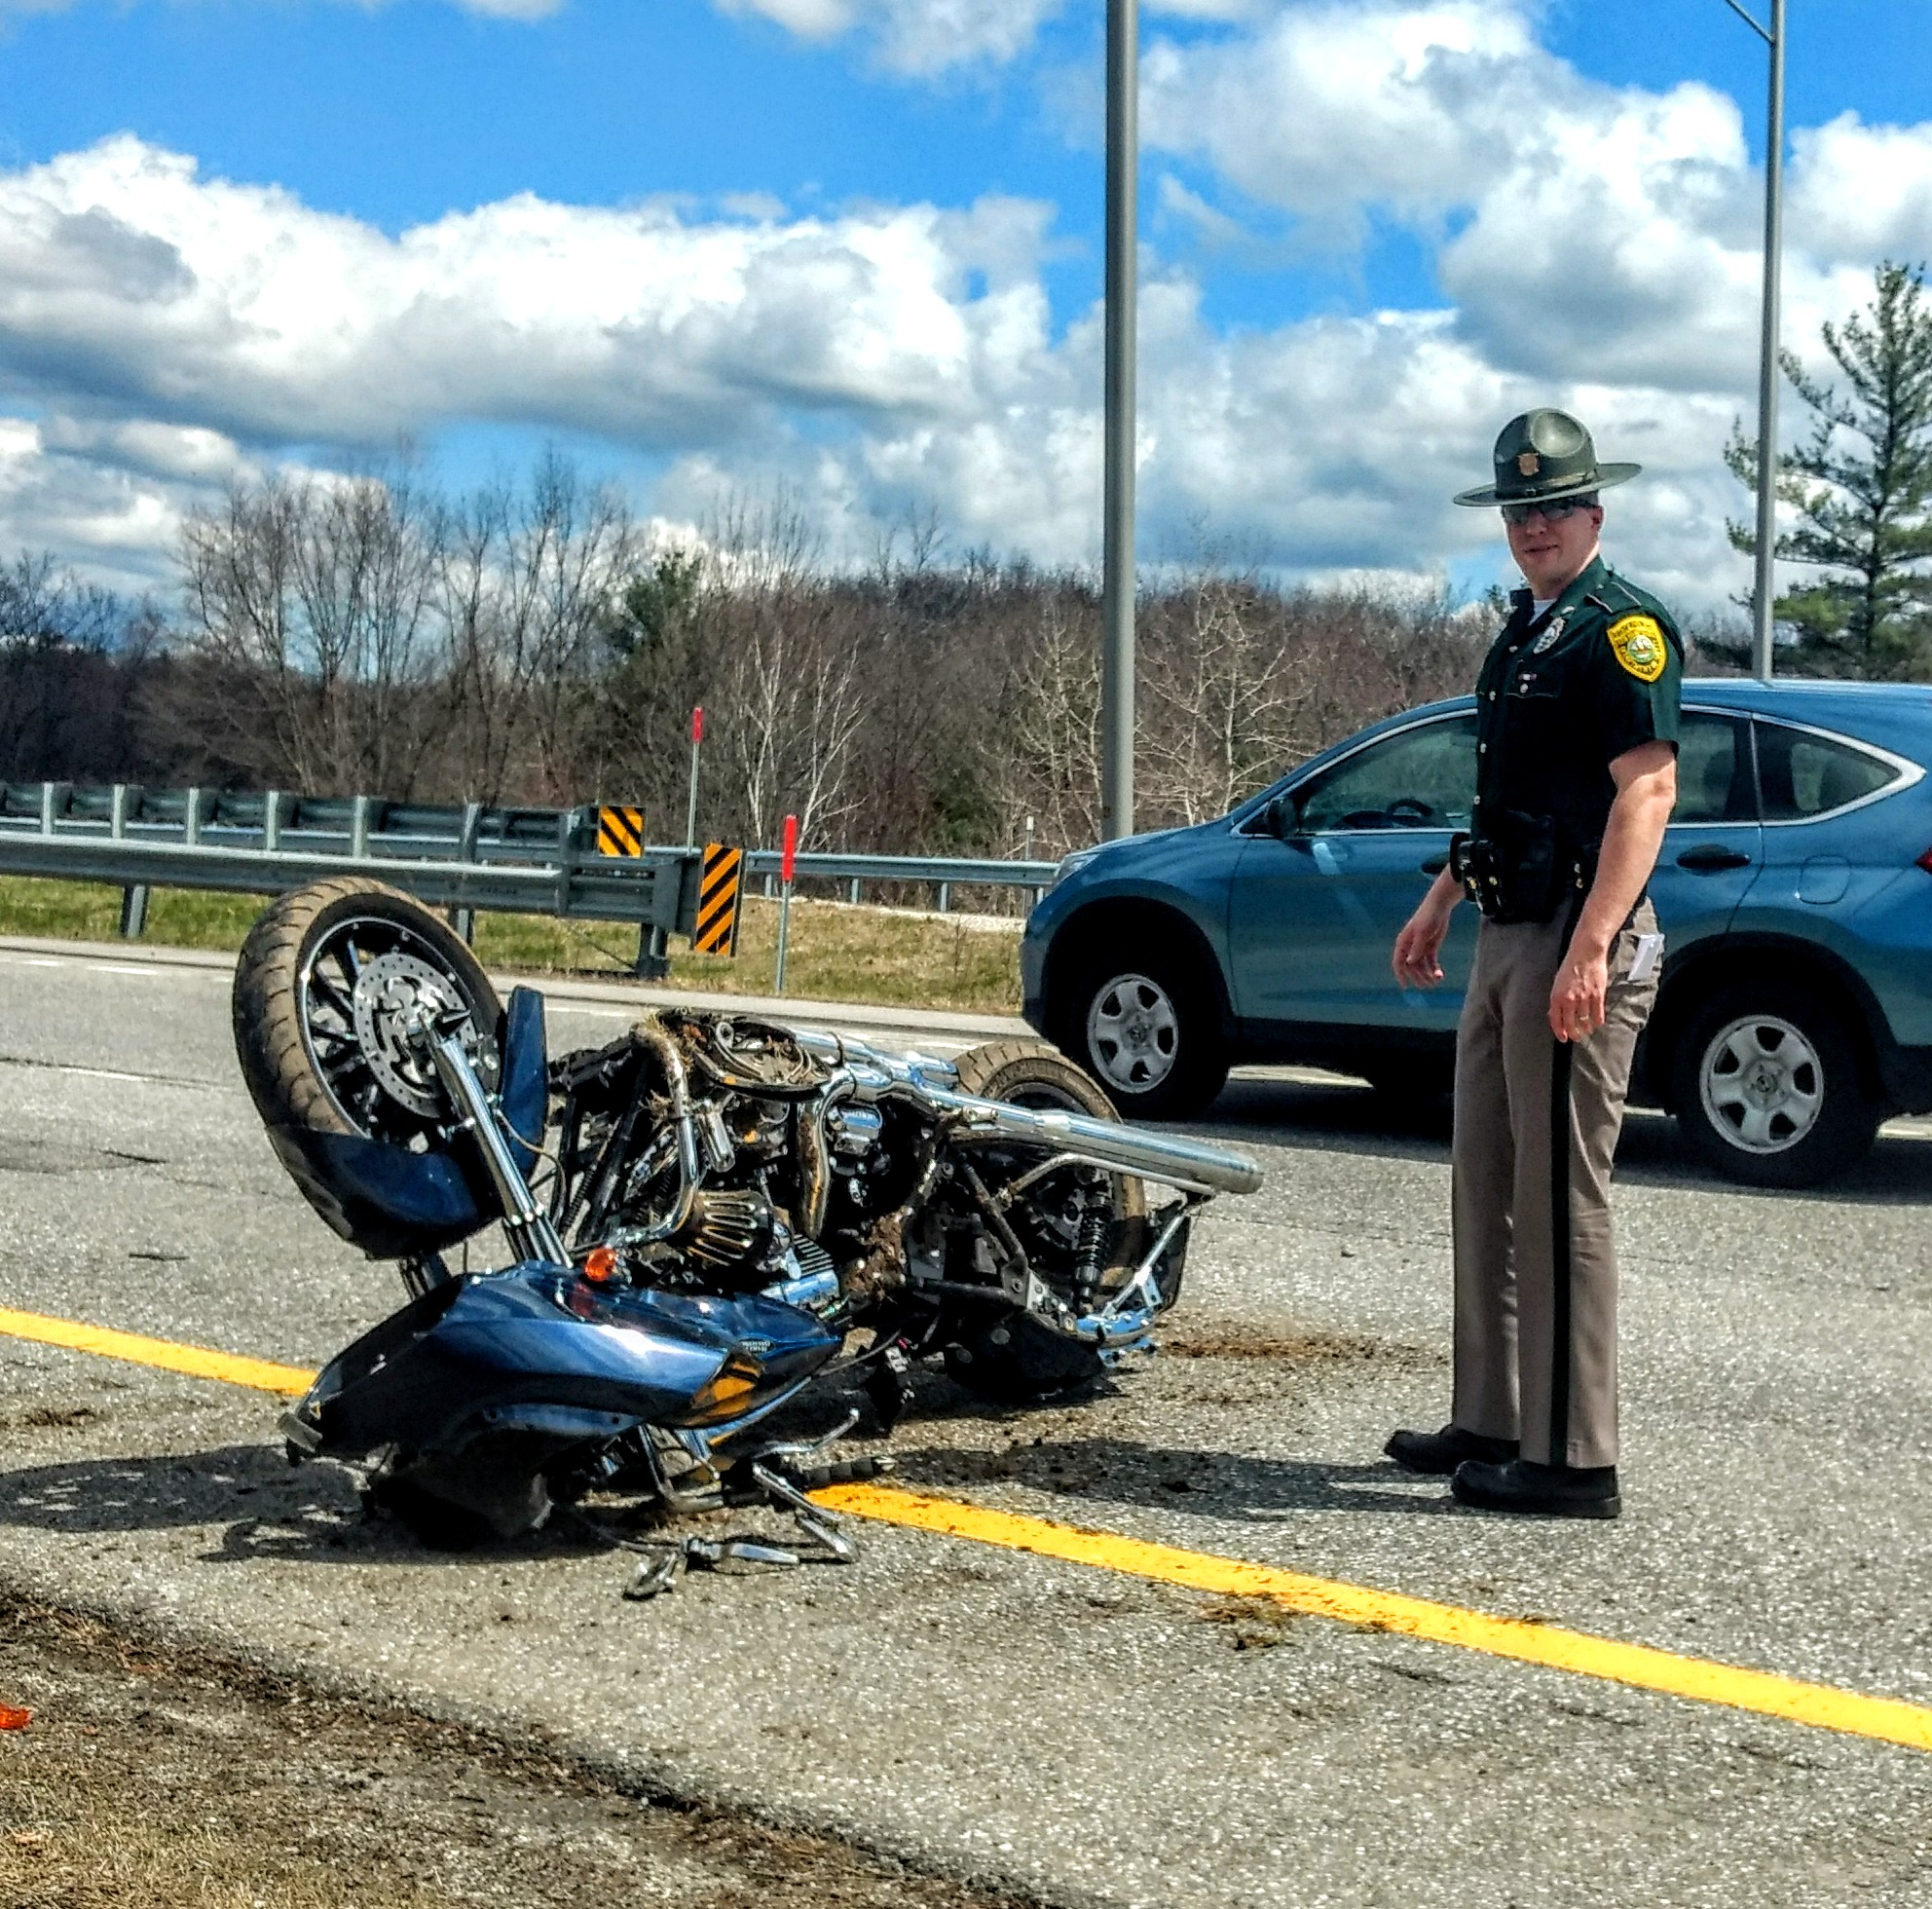 crash motorcycle injured manchester near weare hooksett mc